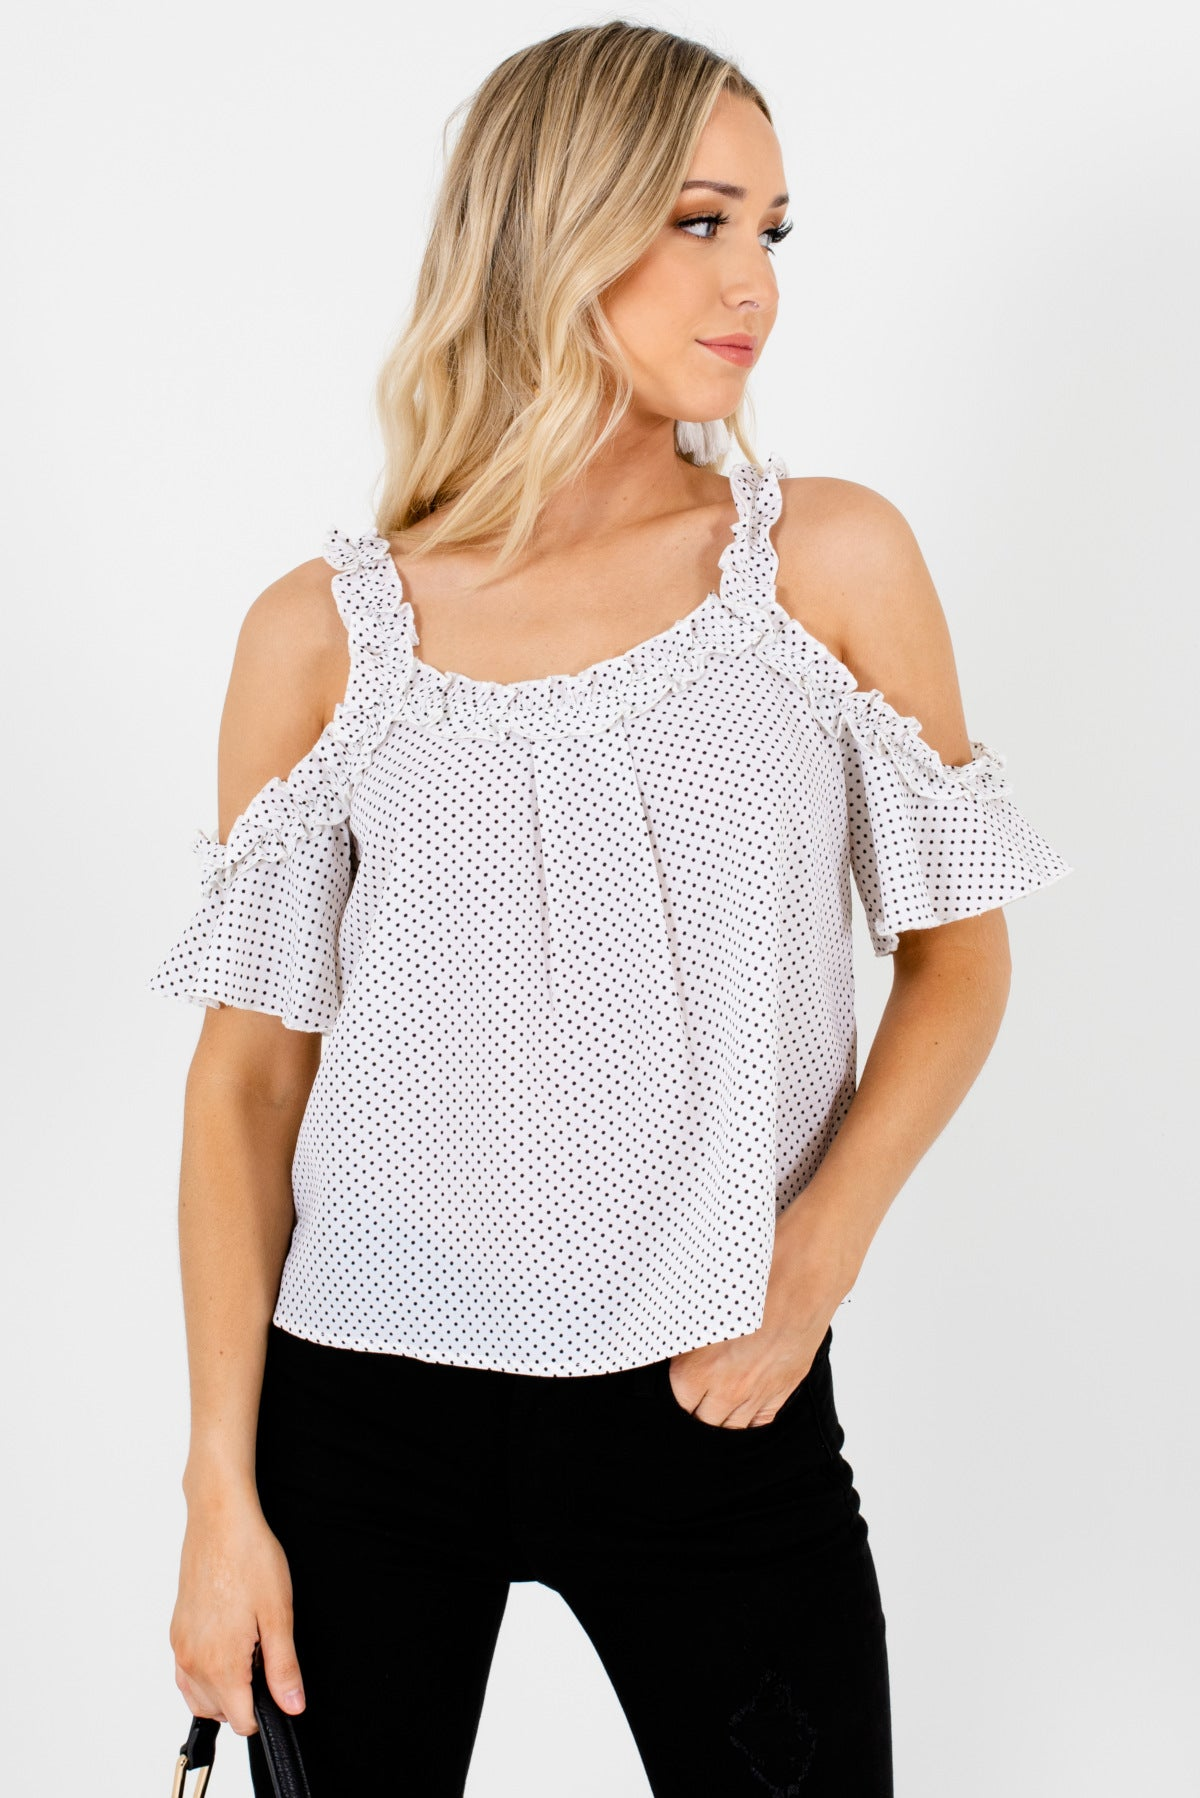 Women's White and Black Ruffle Accents Boutique Cold Shoulder Tops